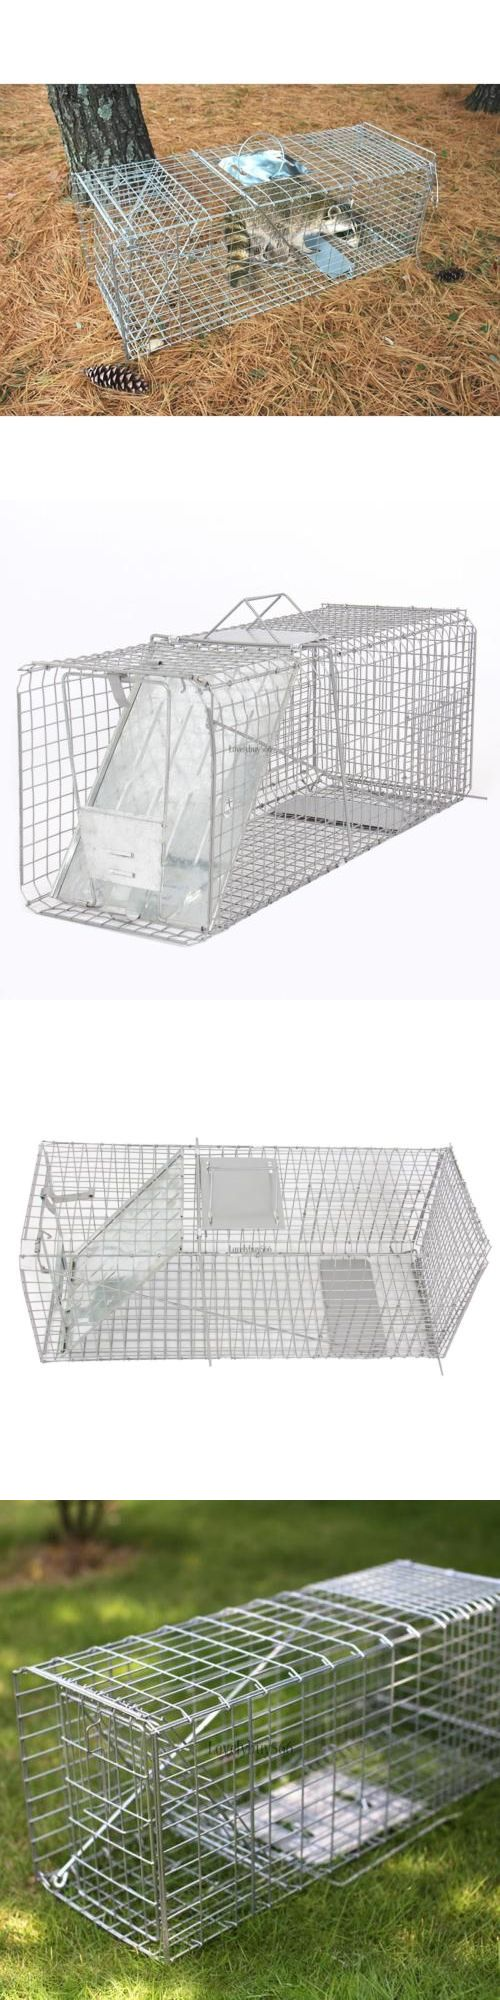 Trapping Supplies 71108: Humane Animal Trap 26X10x11 Steel Cage Live Rodent Control Skunk Rabbit Cat Ly -> BUY IT NOW ONLY: $31.47 on eBay!